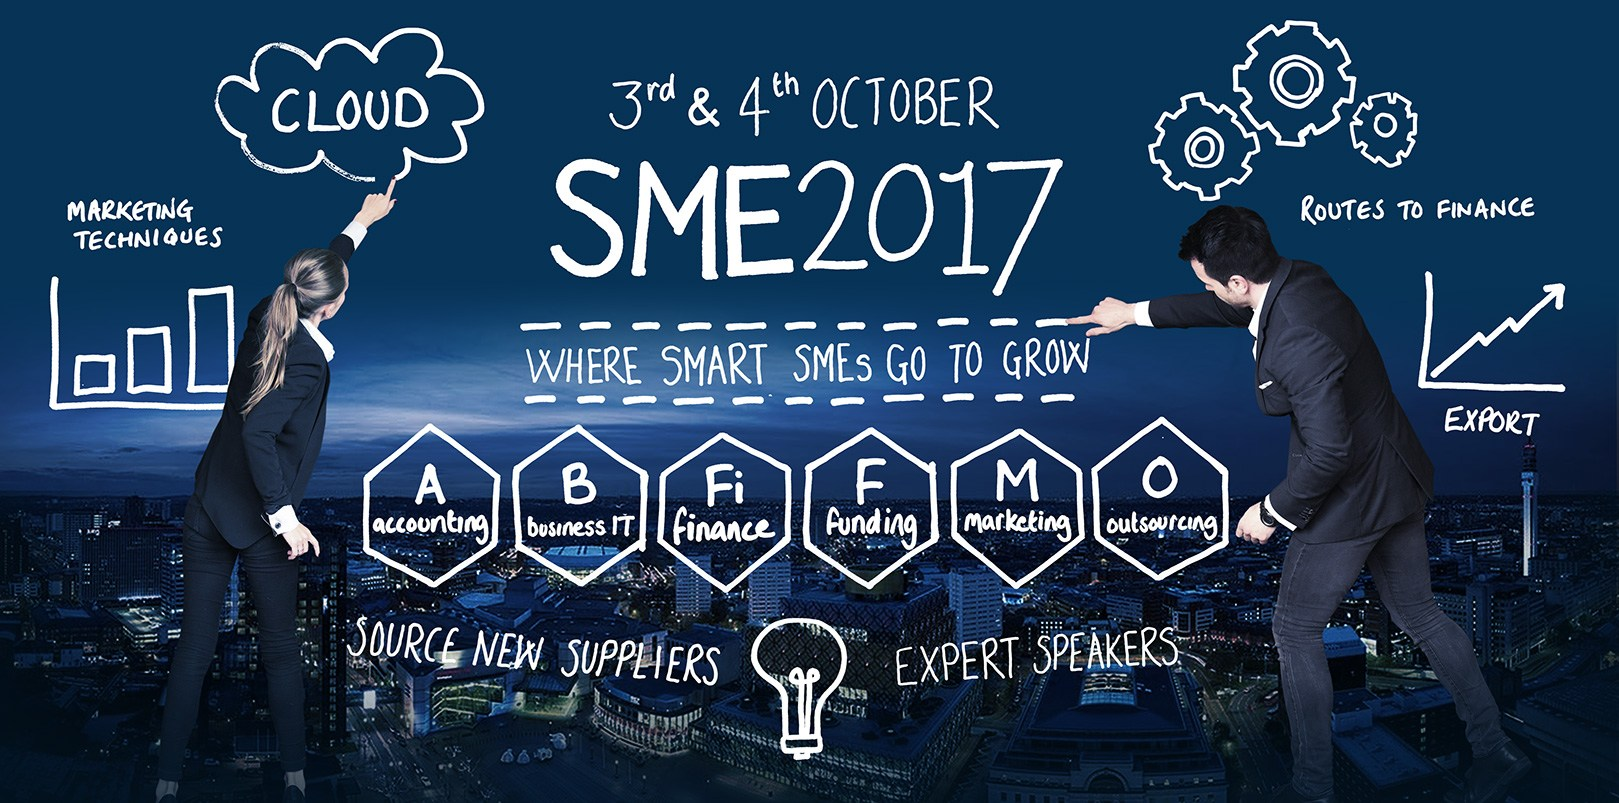 Where smart SMEs go to grow